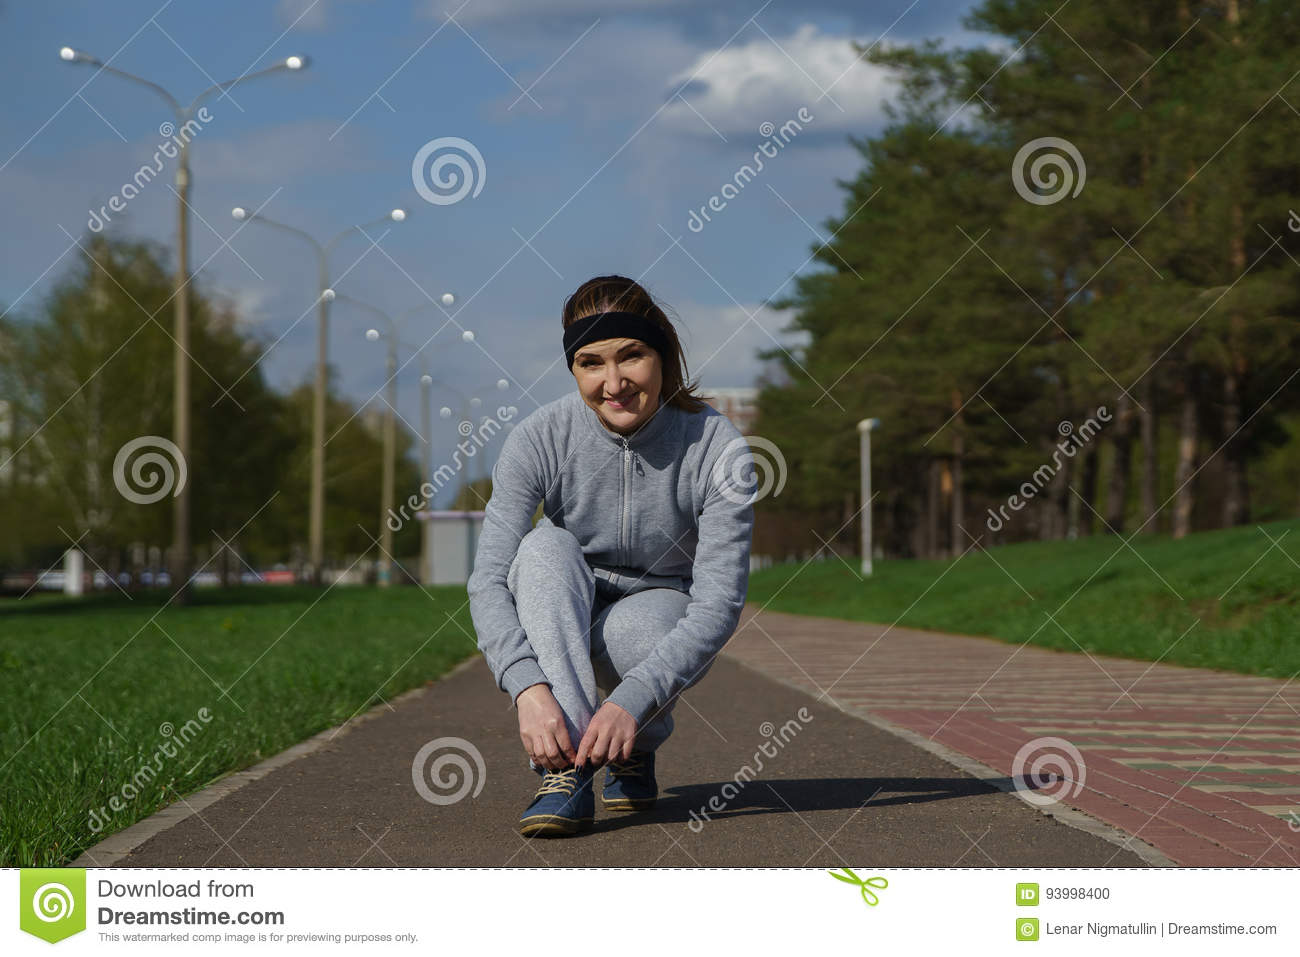 Woman tying shoe laces. Female sport fitness runner getting ready for jogging outdoors on forest path in spring or summer.